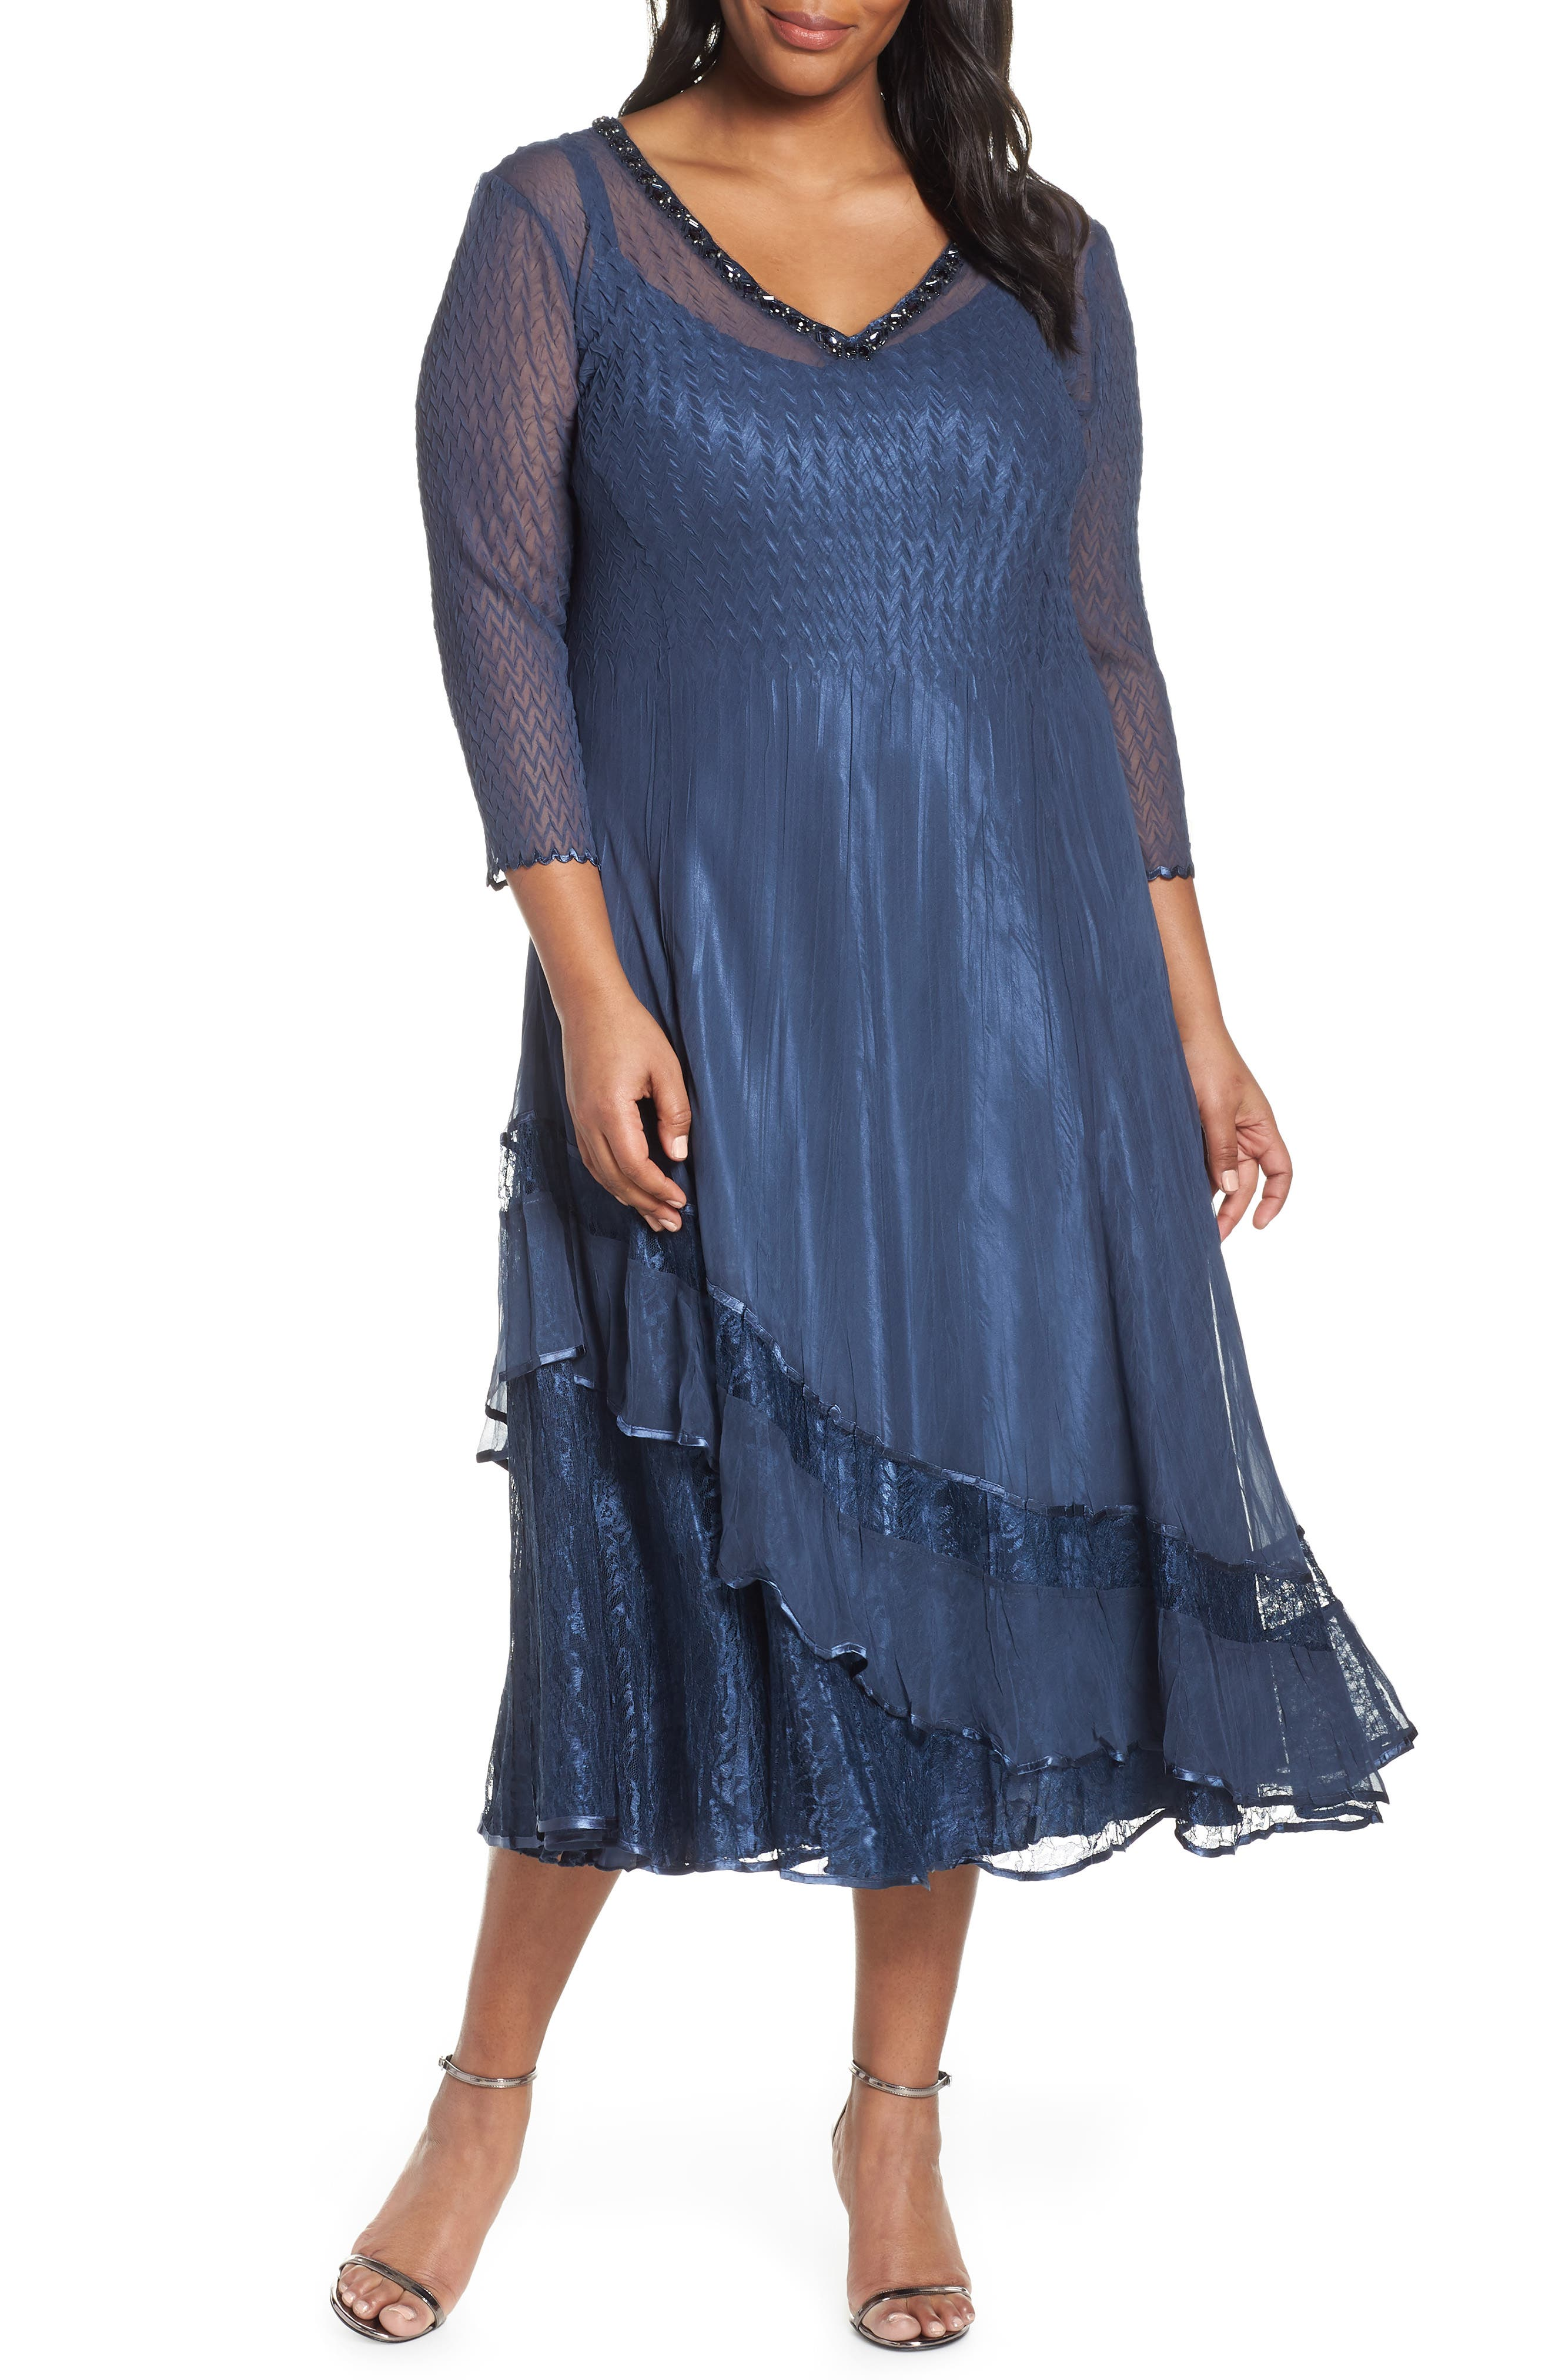 1920s Plus Size Flapper Dresses, Gatsby Dresses, Flapper Costumes Plus Size Womens Komarov Tiered Midi Dress $388.00 AT vintagedancer.com